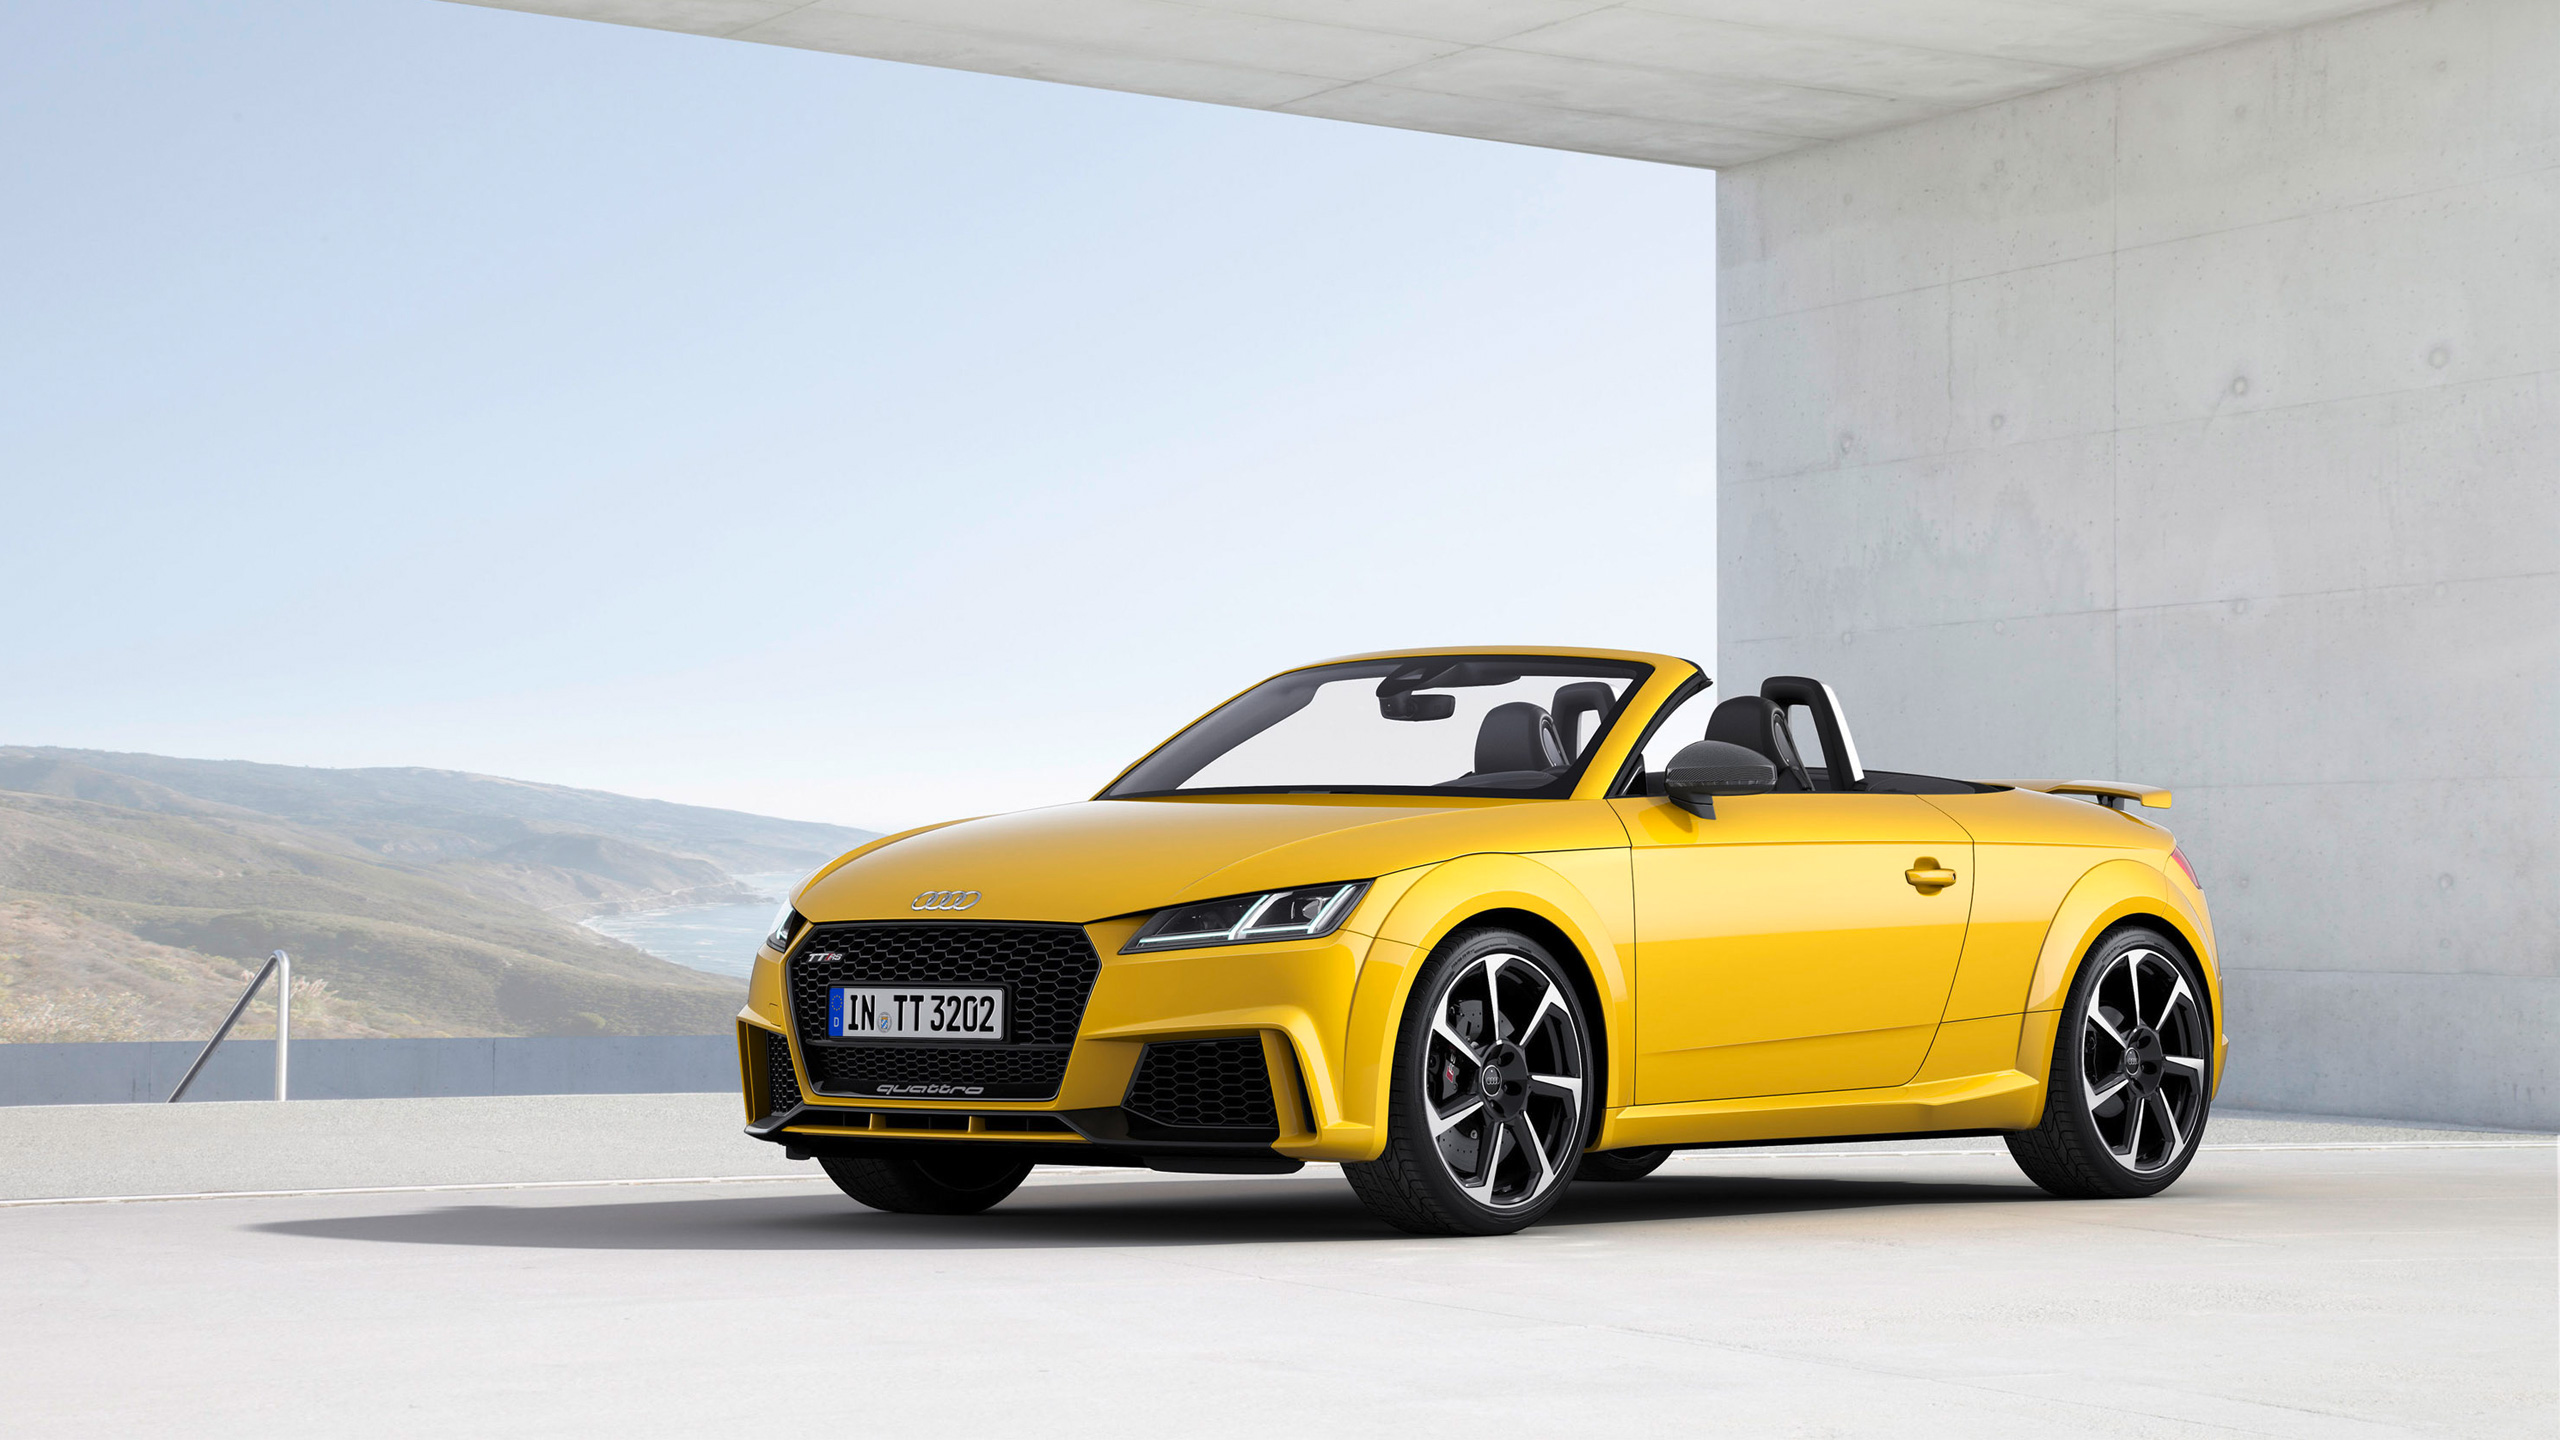 2017 audi tt rs roadster 4 wallpaper hd car wallpapers. Black Bedroom Furniture Sets. Home Design Ideas